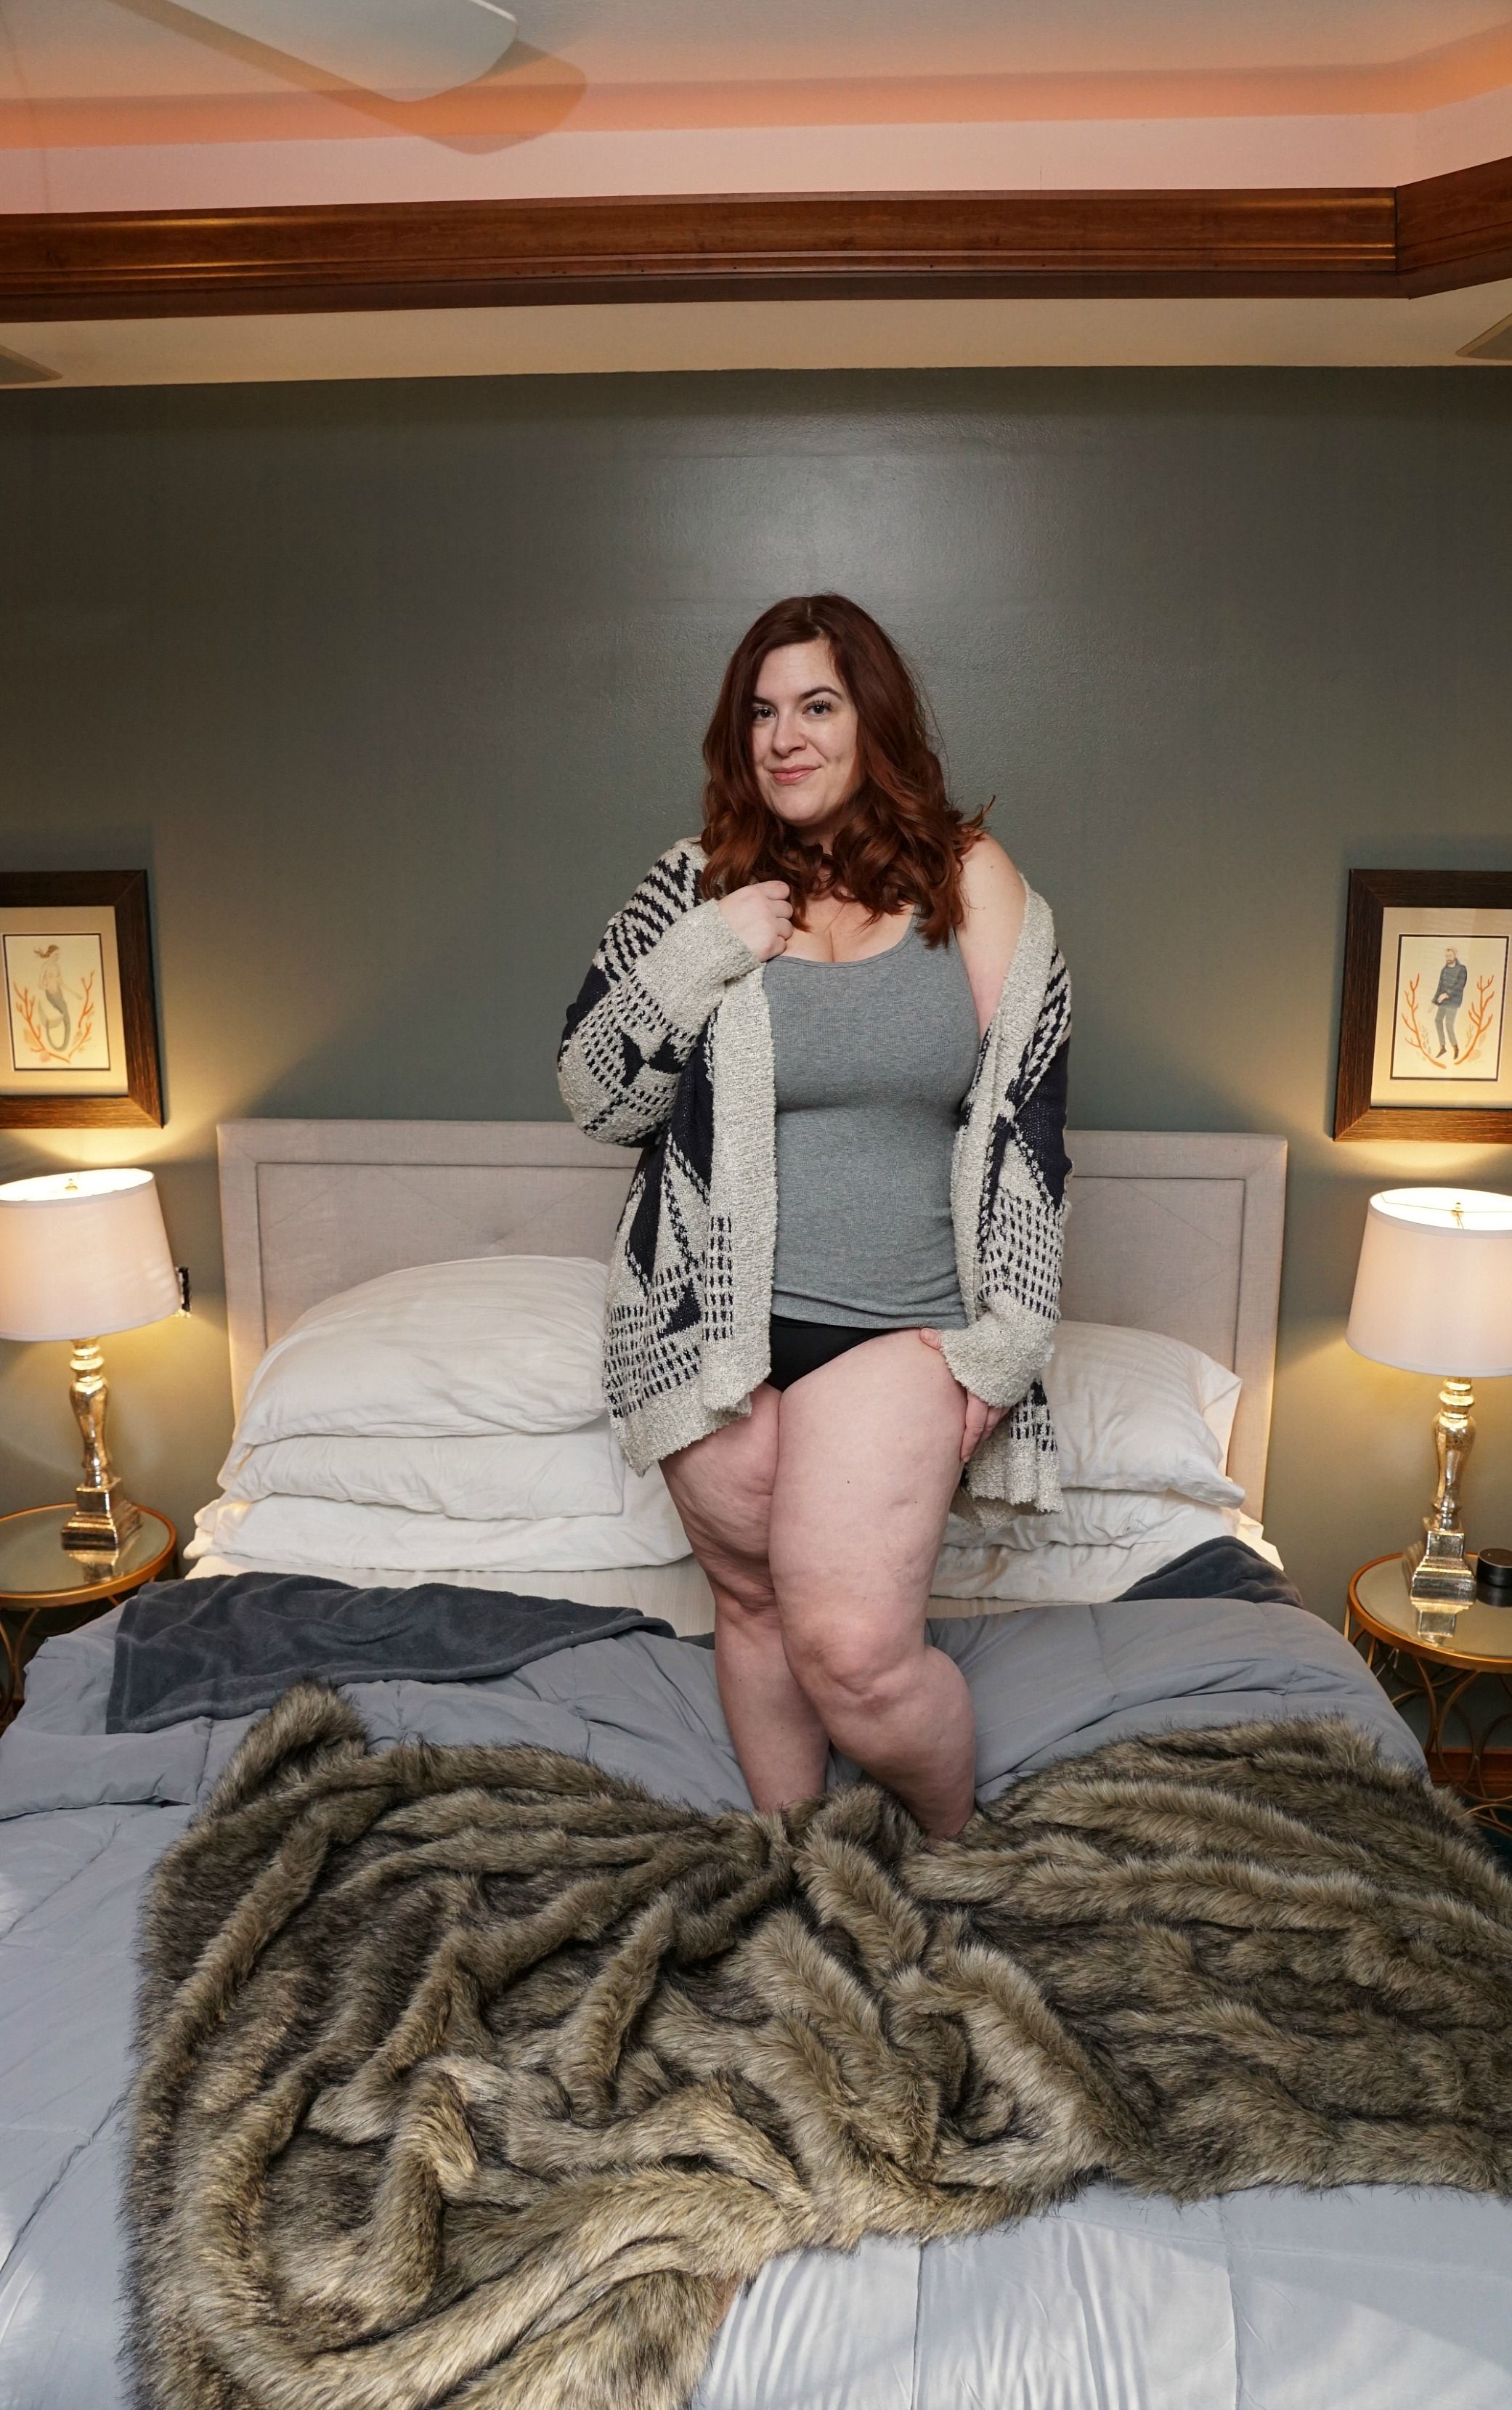 a779148373d How Brittany Gibbons Learned to Love Her Thighs - Body Image and Acceptance